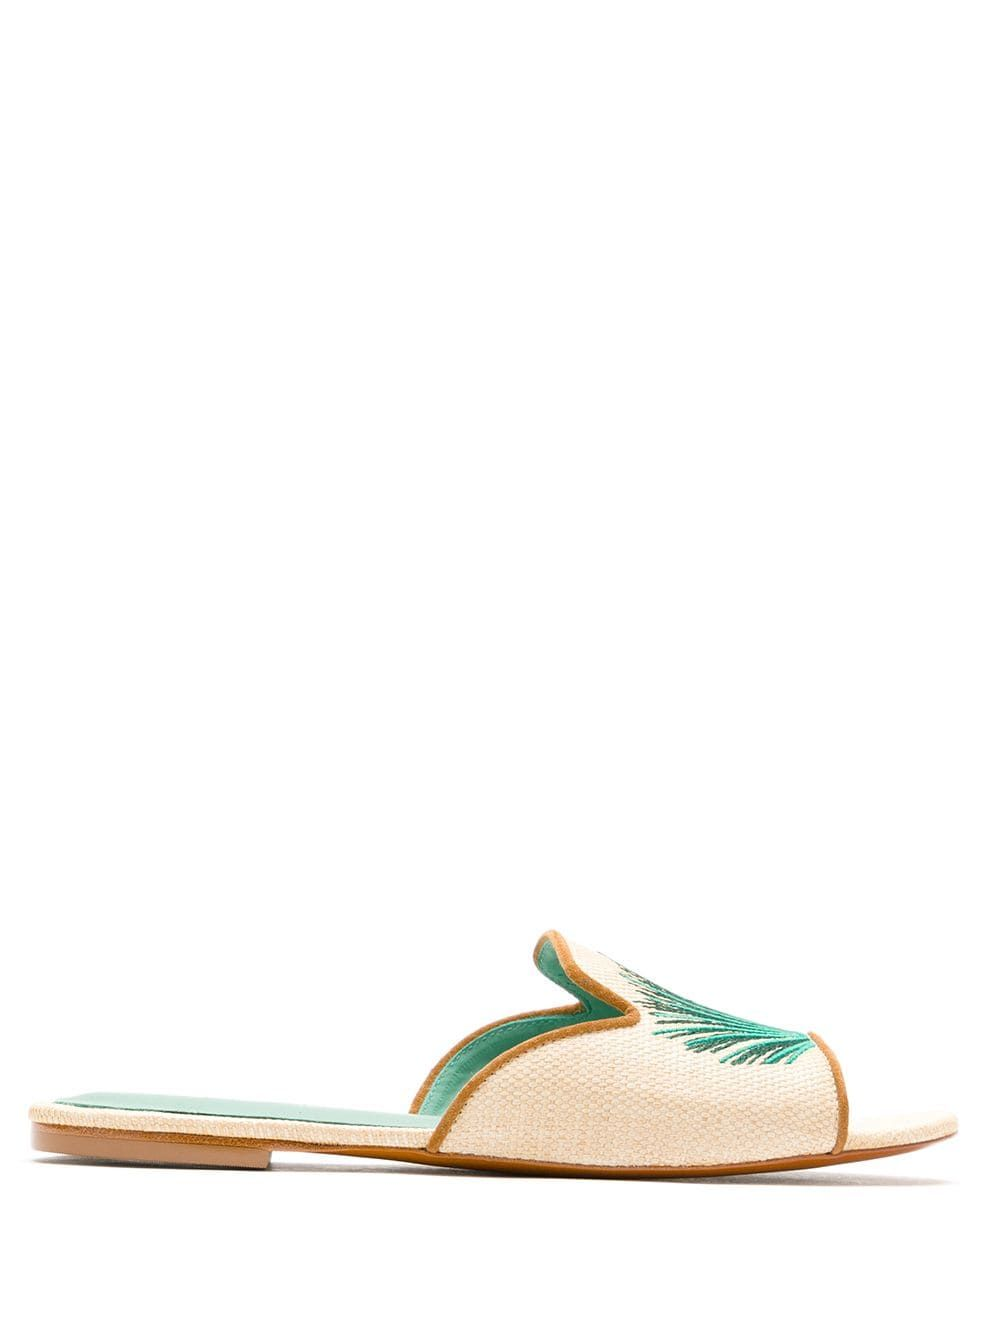 Blue Bird Shoes Palmeira Straw Slides - Farfetch